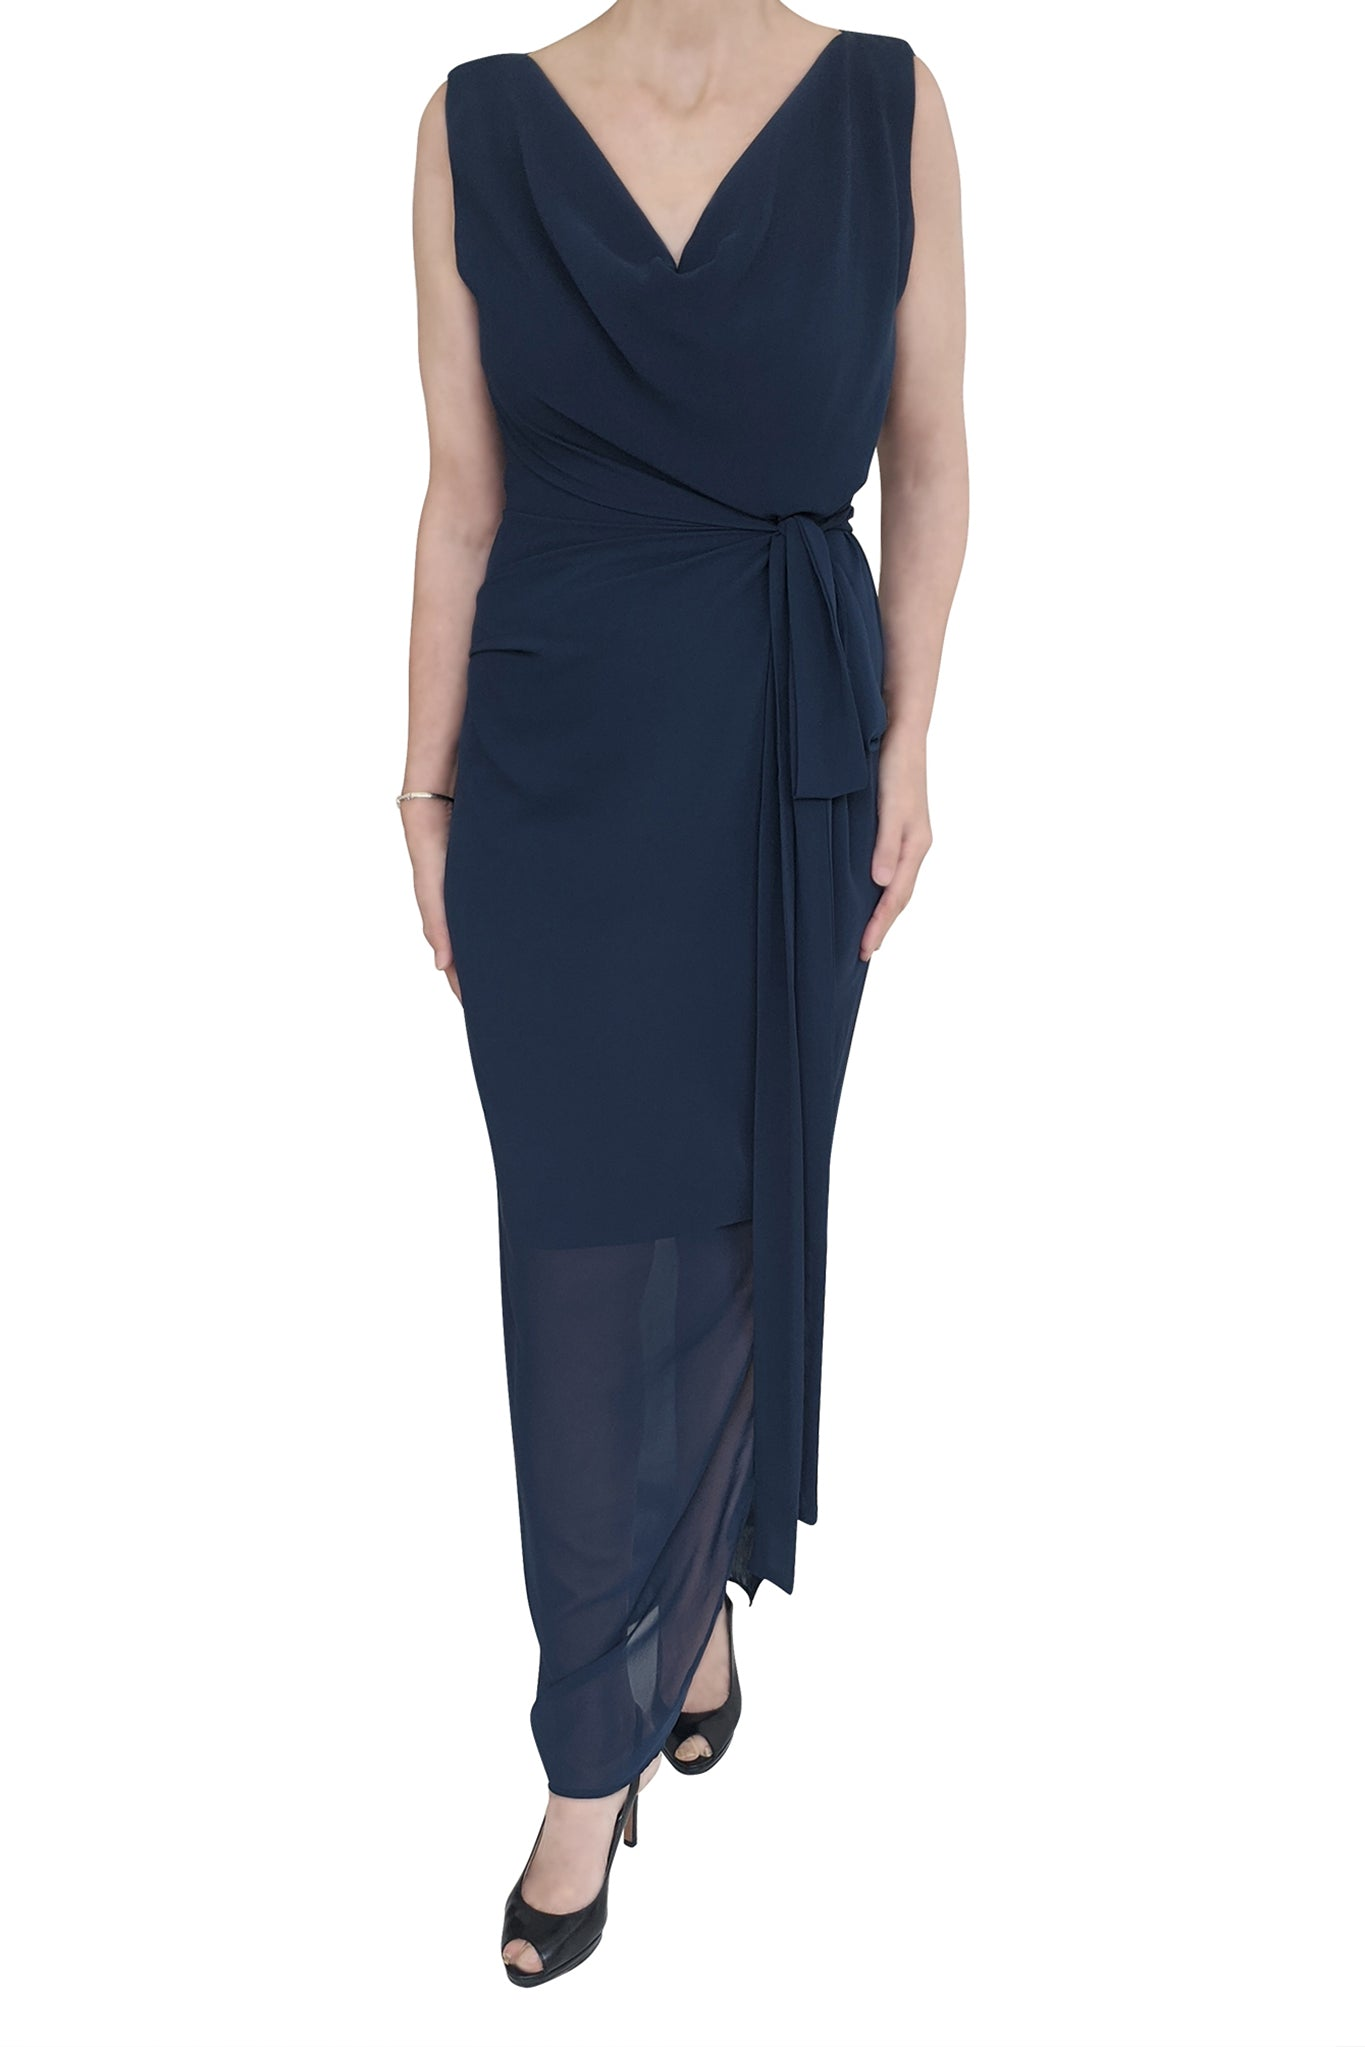 Evoke Maxi, Twilight